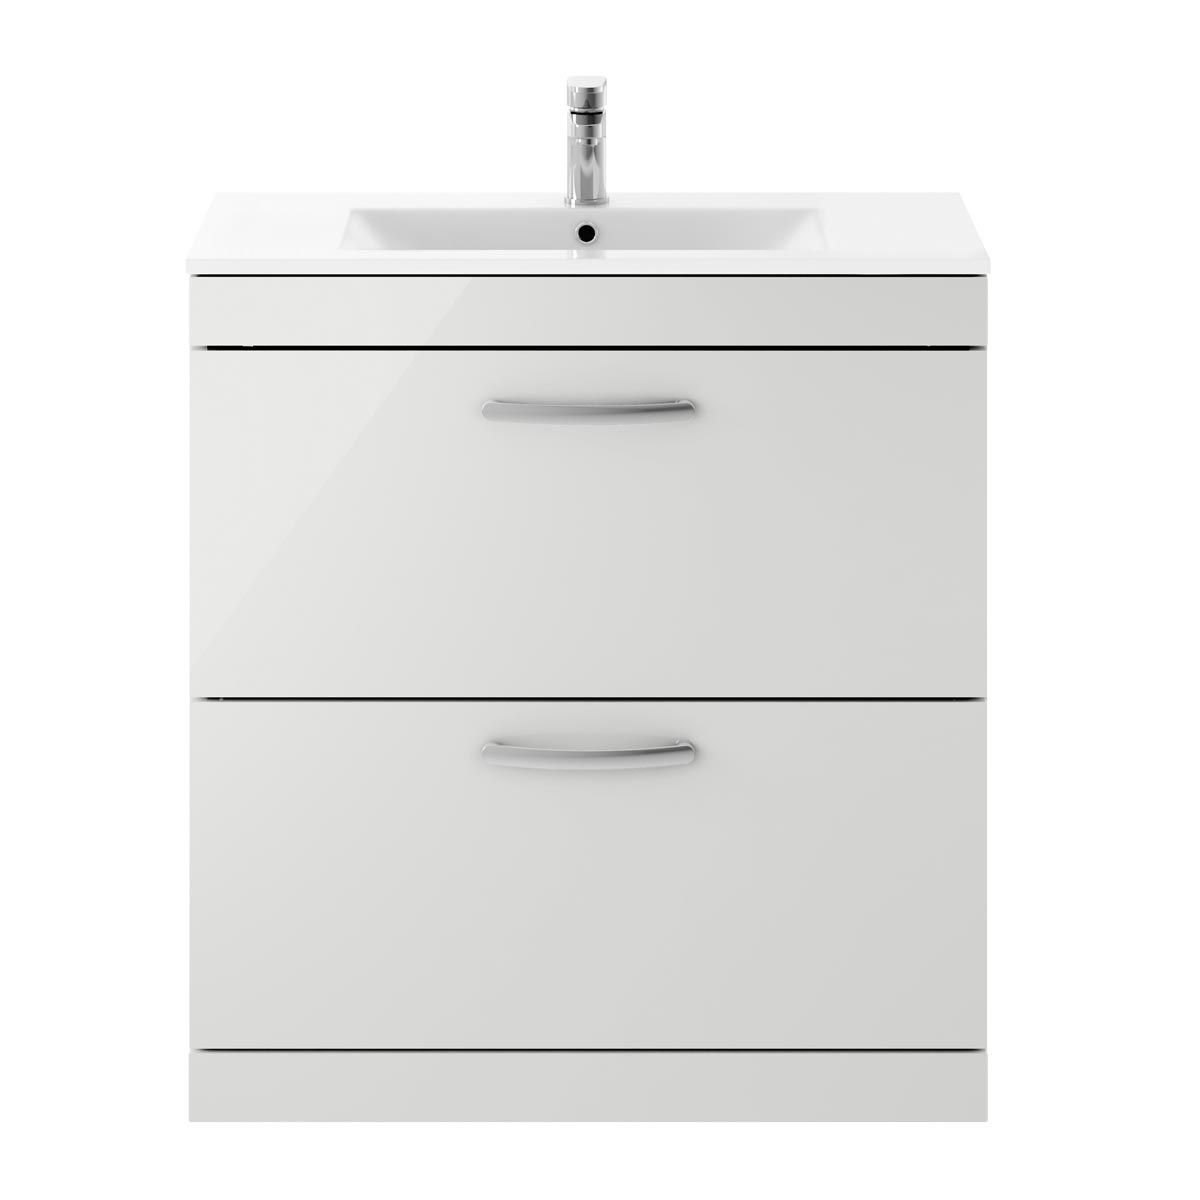 Nuie Athena Gloss Grey Mist 2 Drawer Floor Standing Vanity Unit with 18mm Profile Basin 800mm